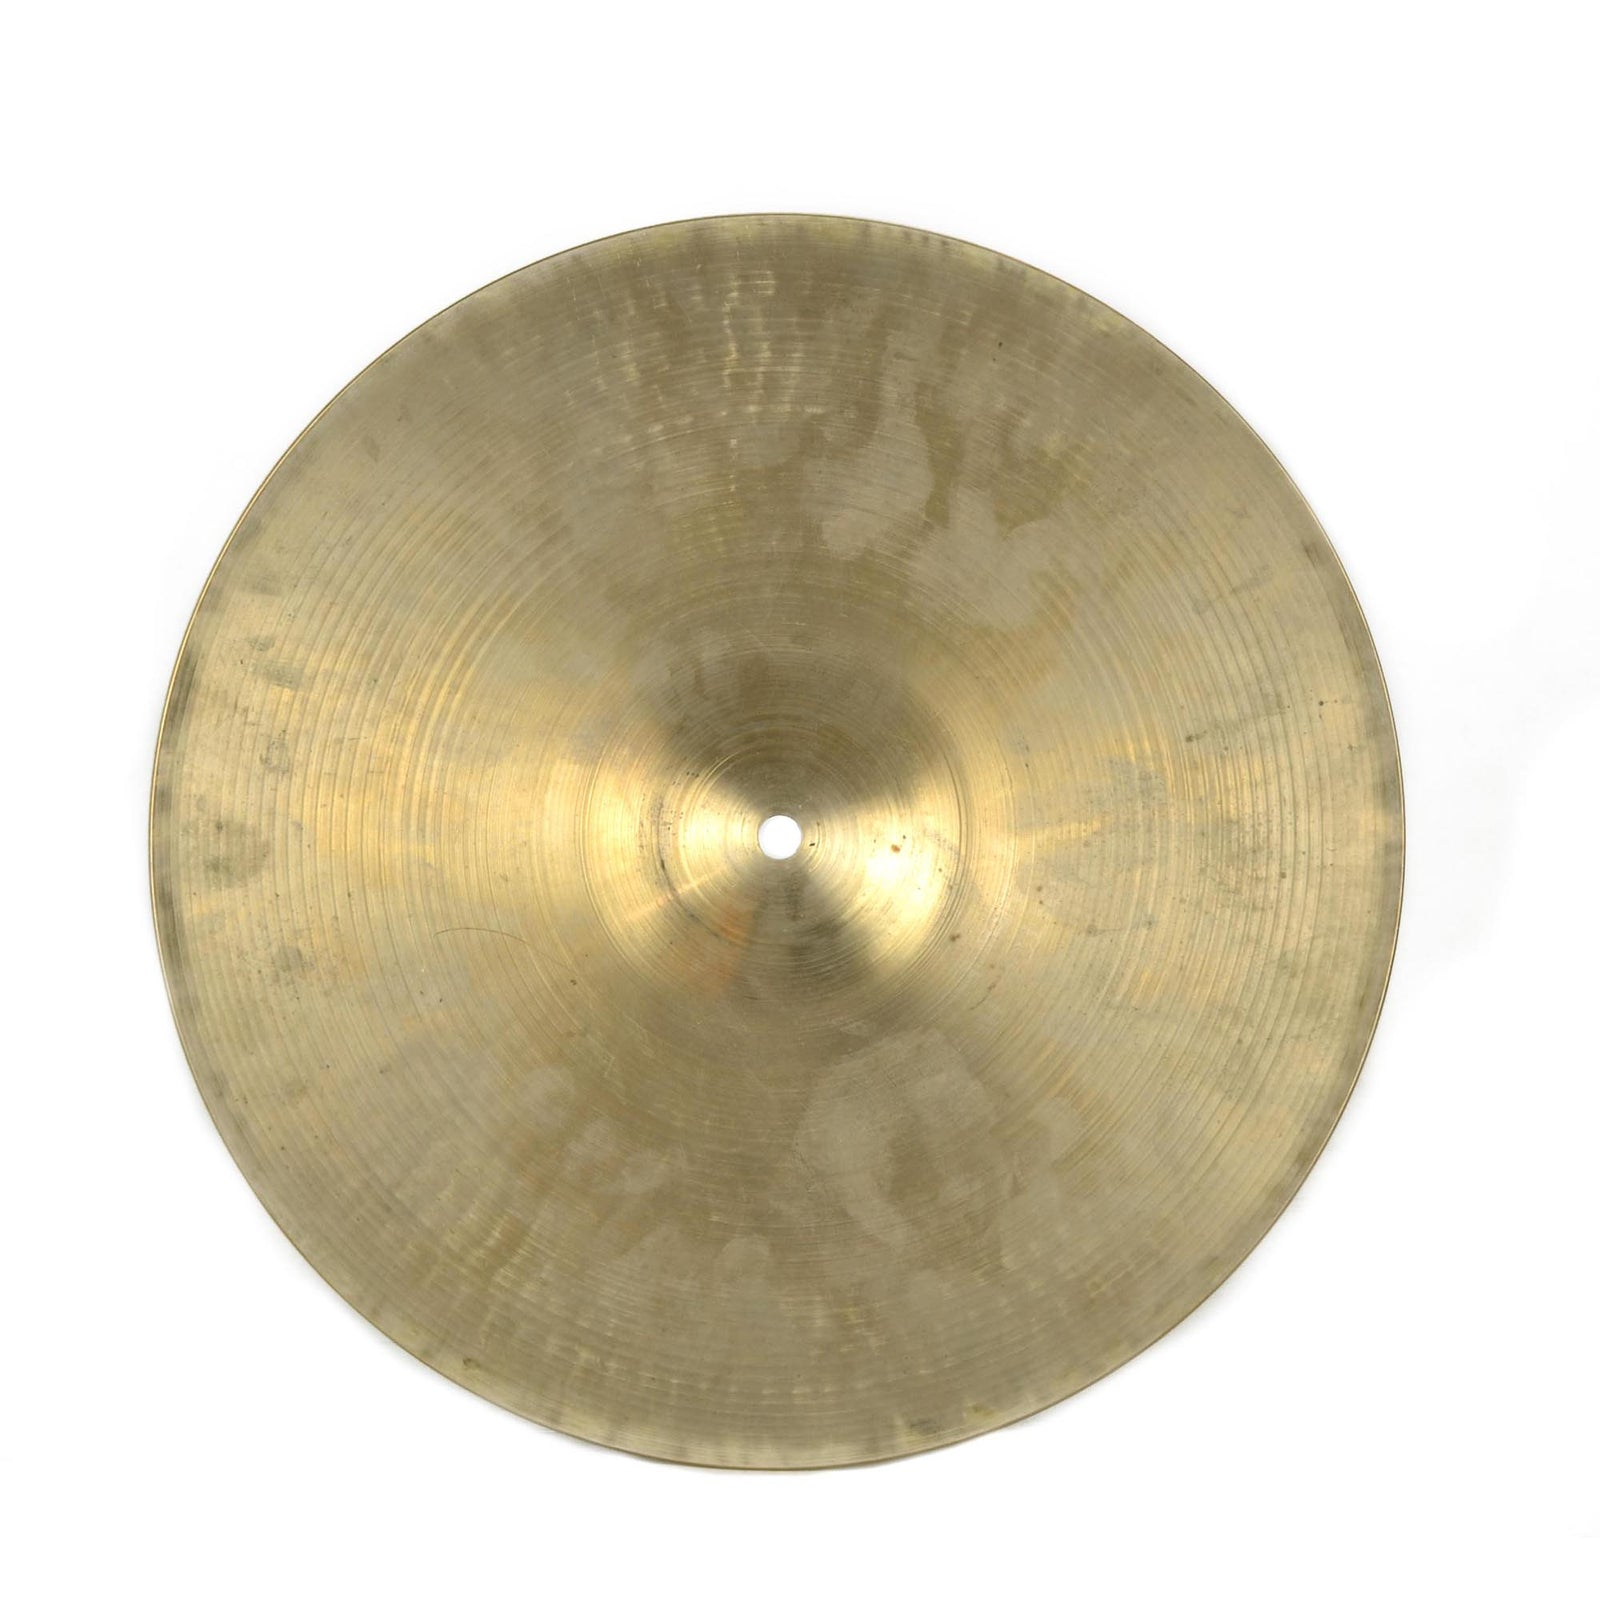 "Zildjian '70's Hi Hat Bottom Only 14"" - Used"